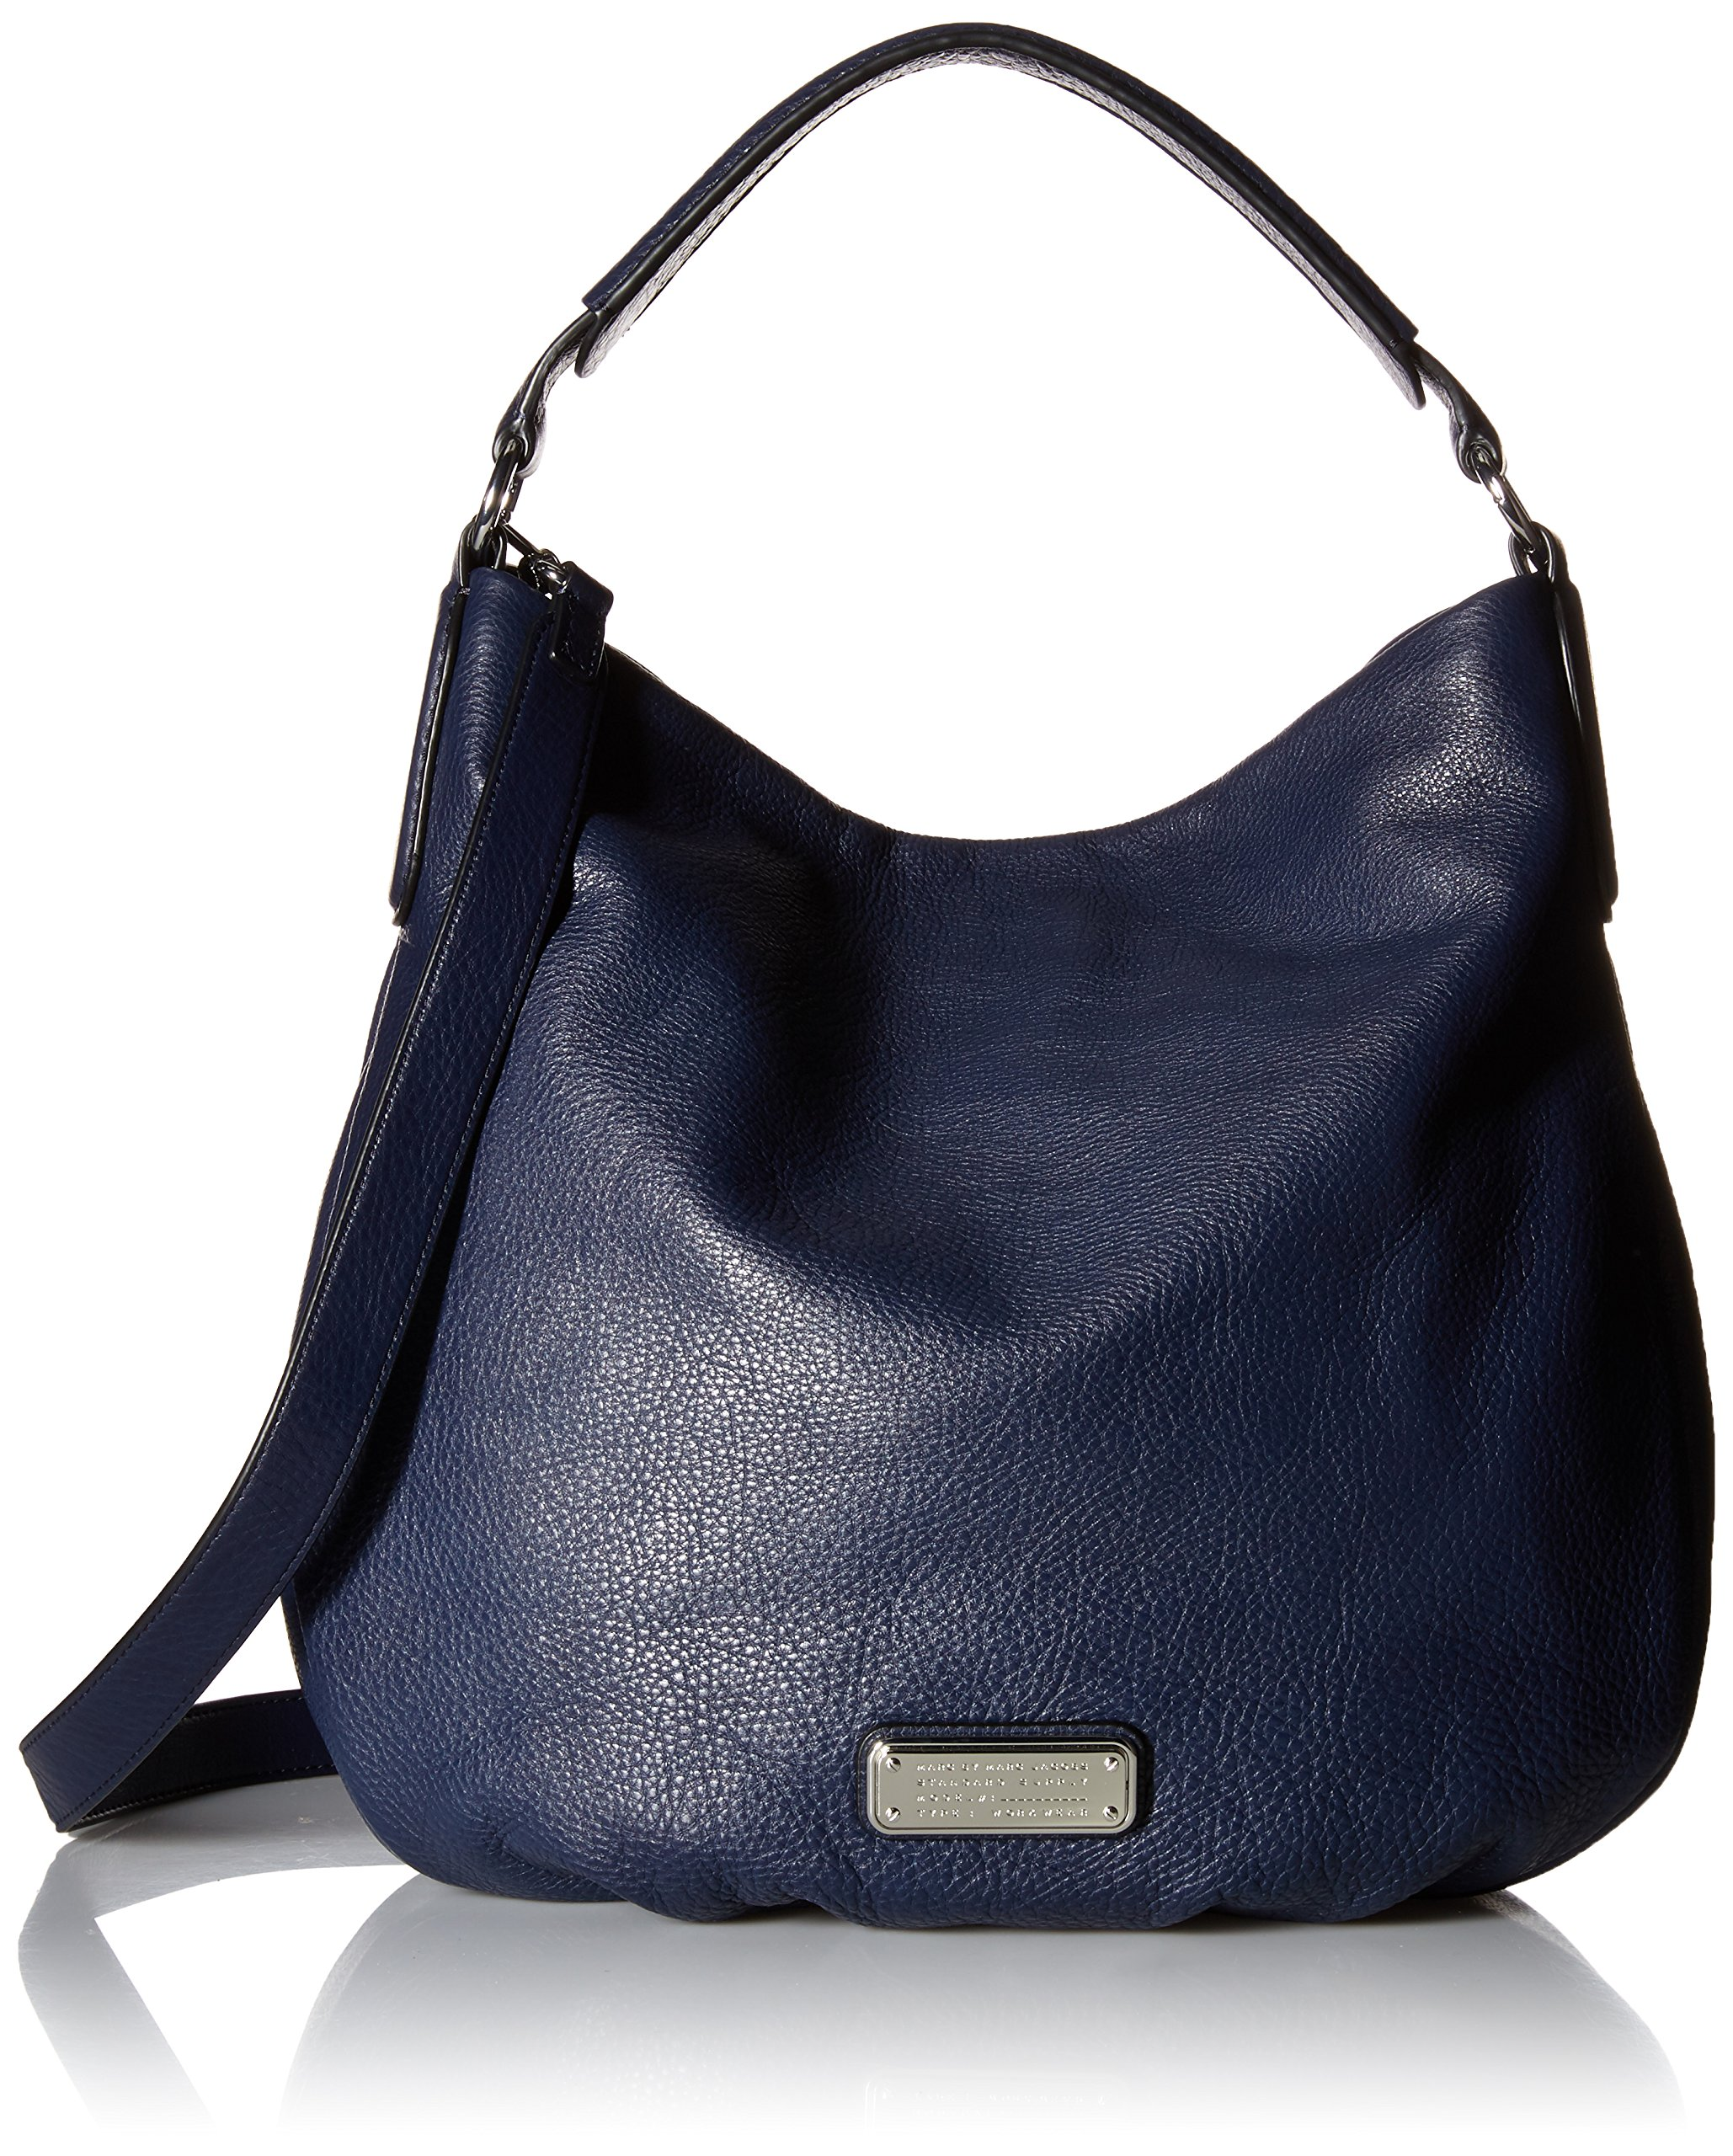 Marc by Marc Jacobs New Q Hillier Hobo Bag, India Ink, One Size